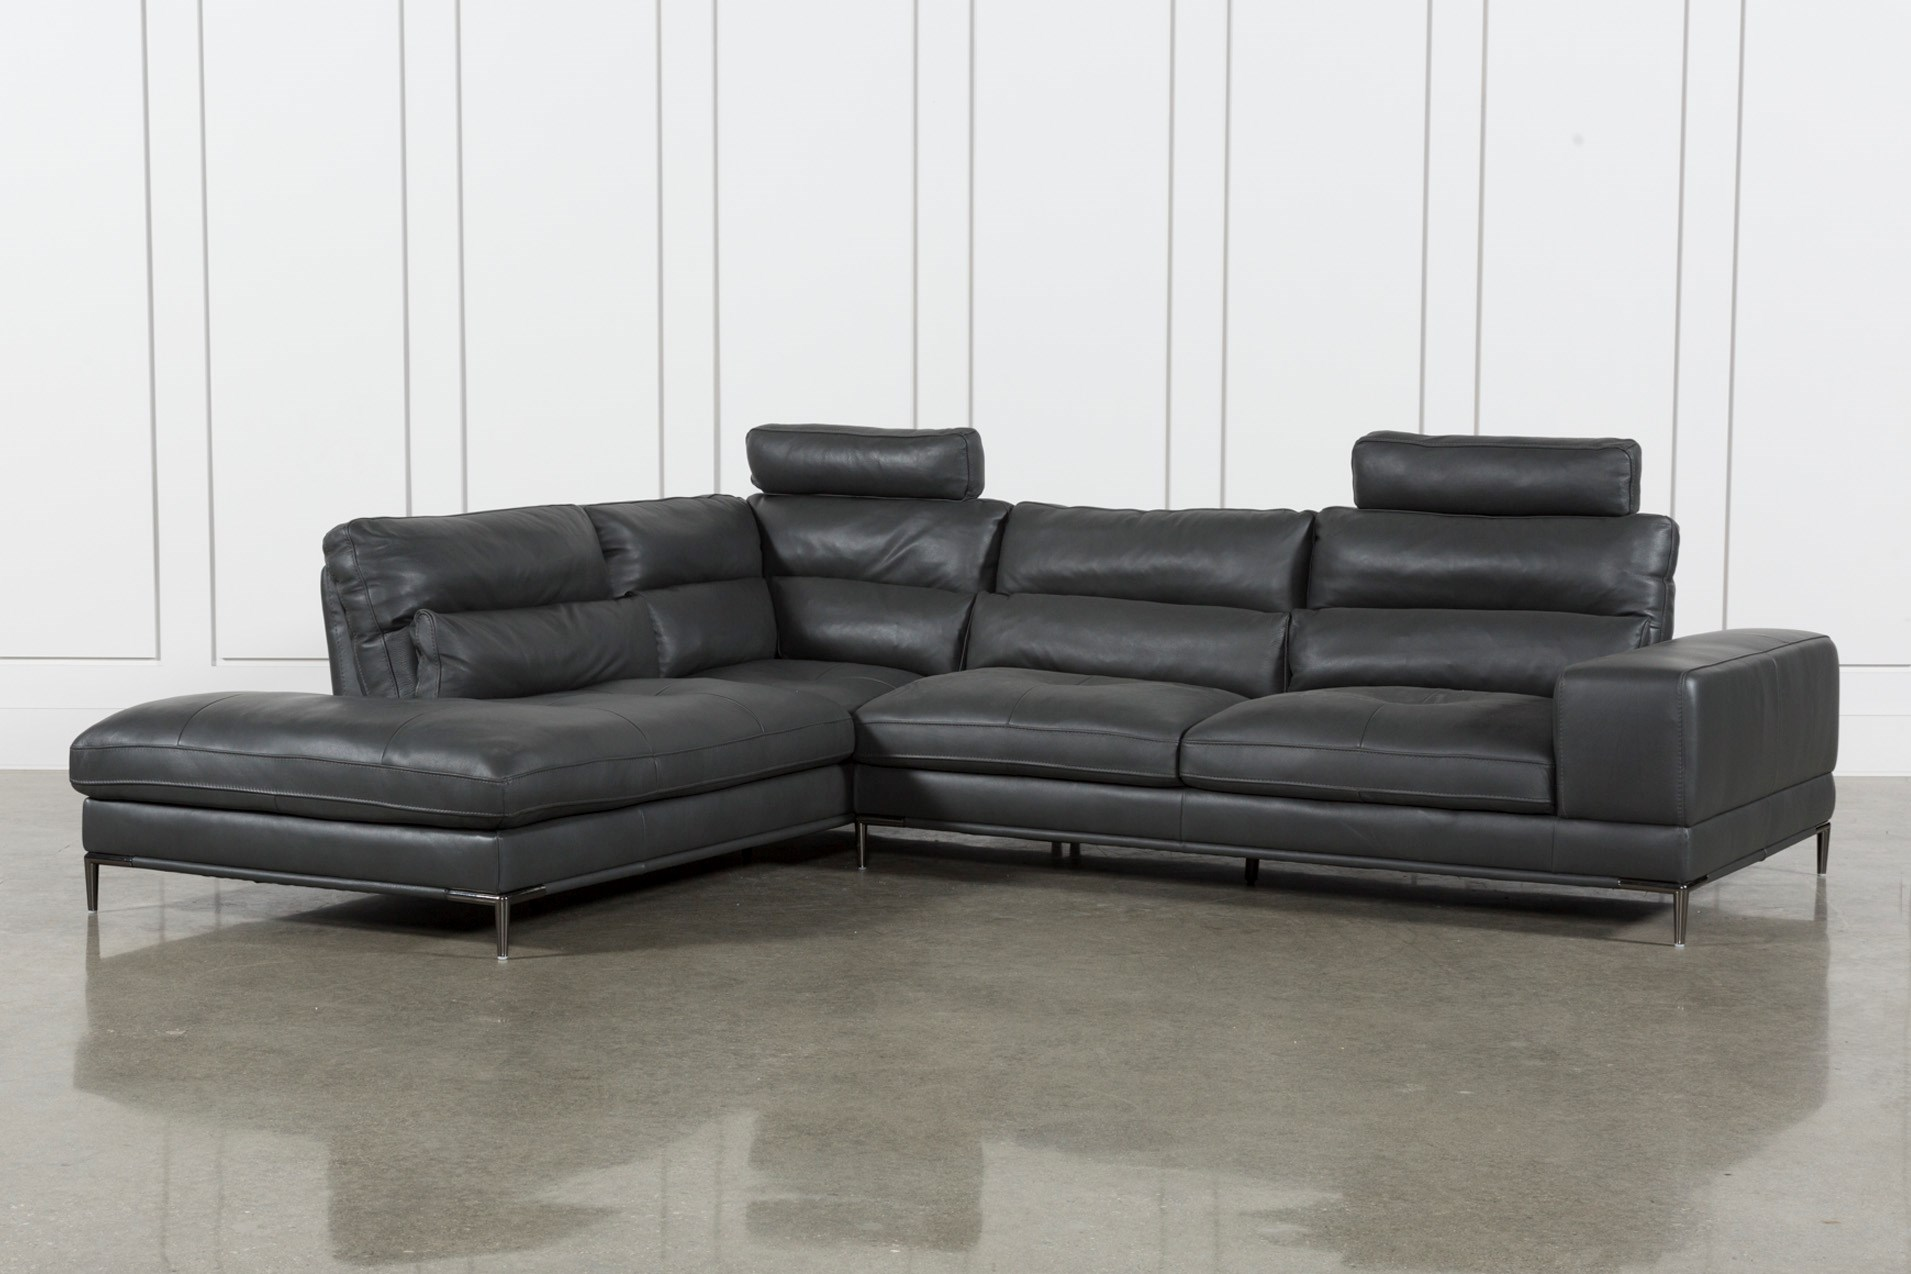 f chaise grey with recliner ideas sectionals furniture ashley corduroy room leather sectional sofa in ashleys piece brown couches living